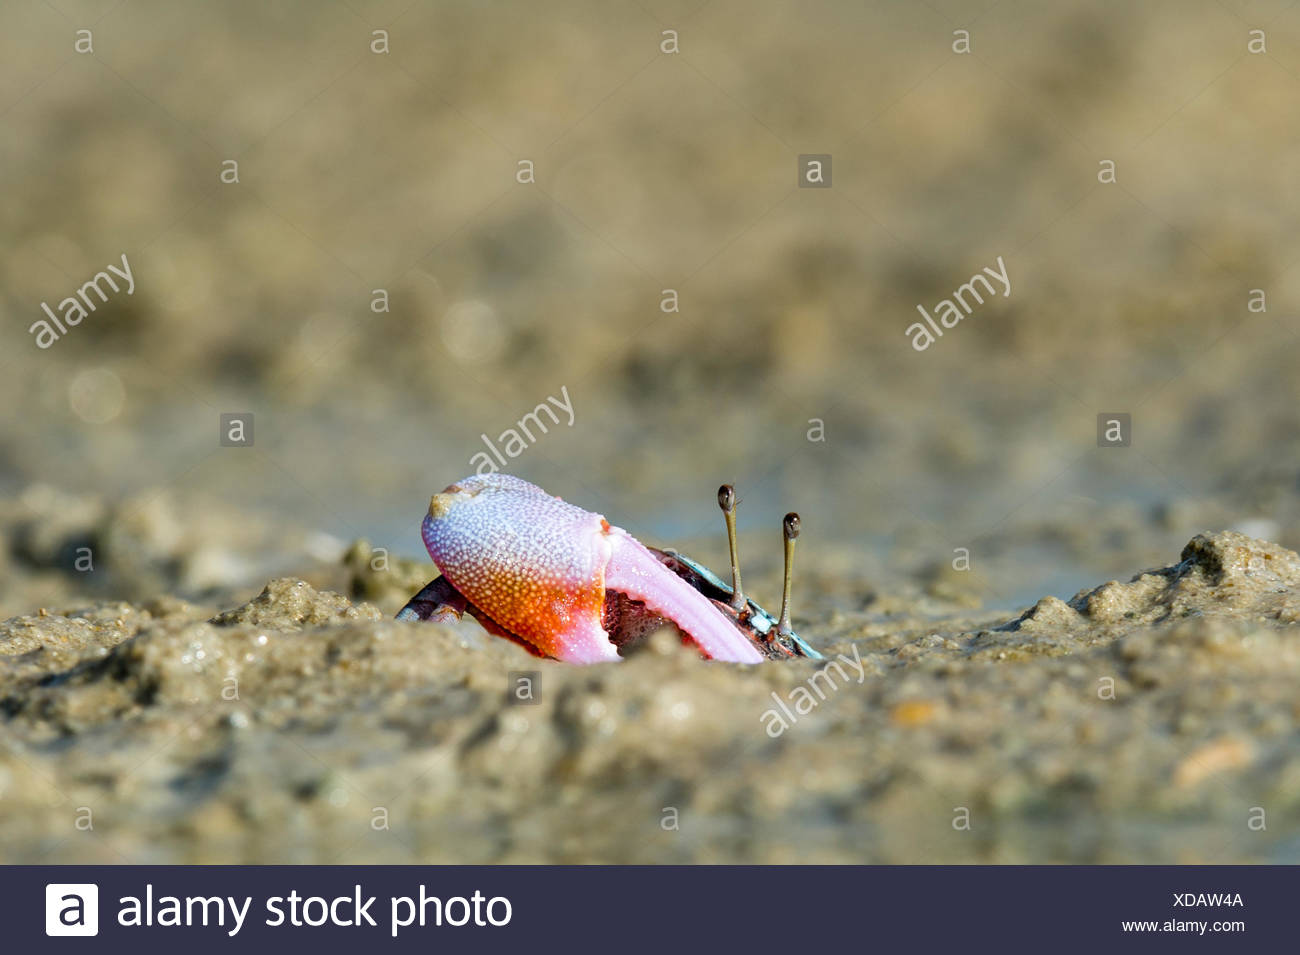 A male Fiddler Crab guarding the entrance to his burrow with a large claw. - Stock Image